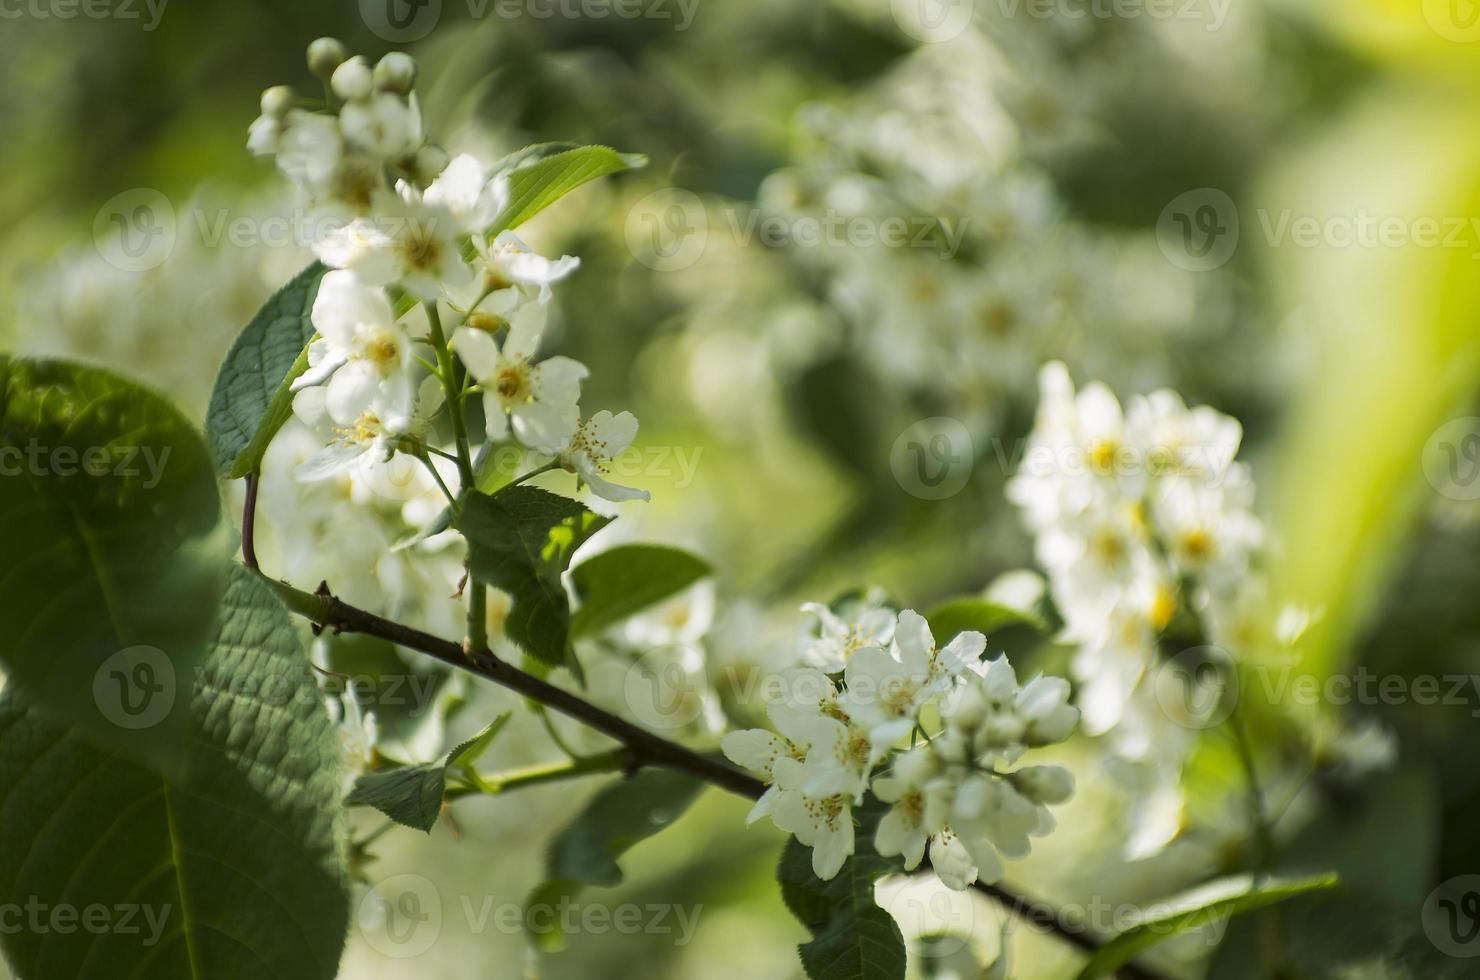 Bird-cherry tree with white flowers in daylight photo